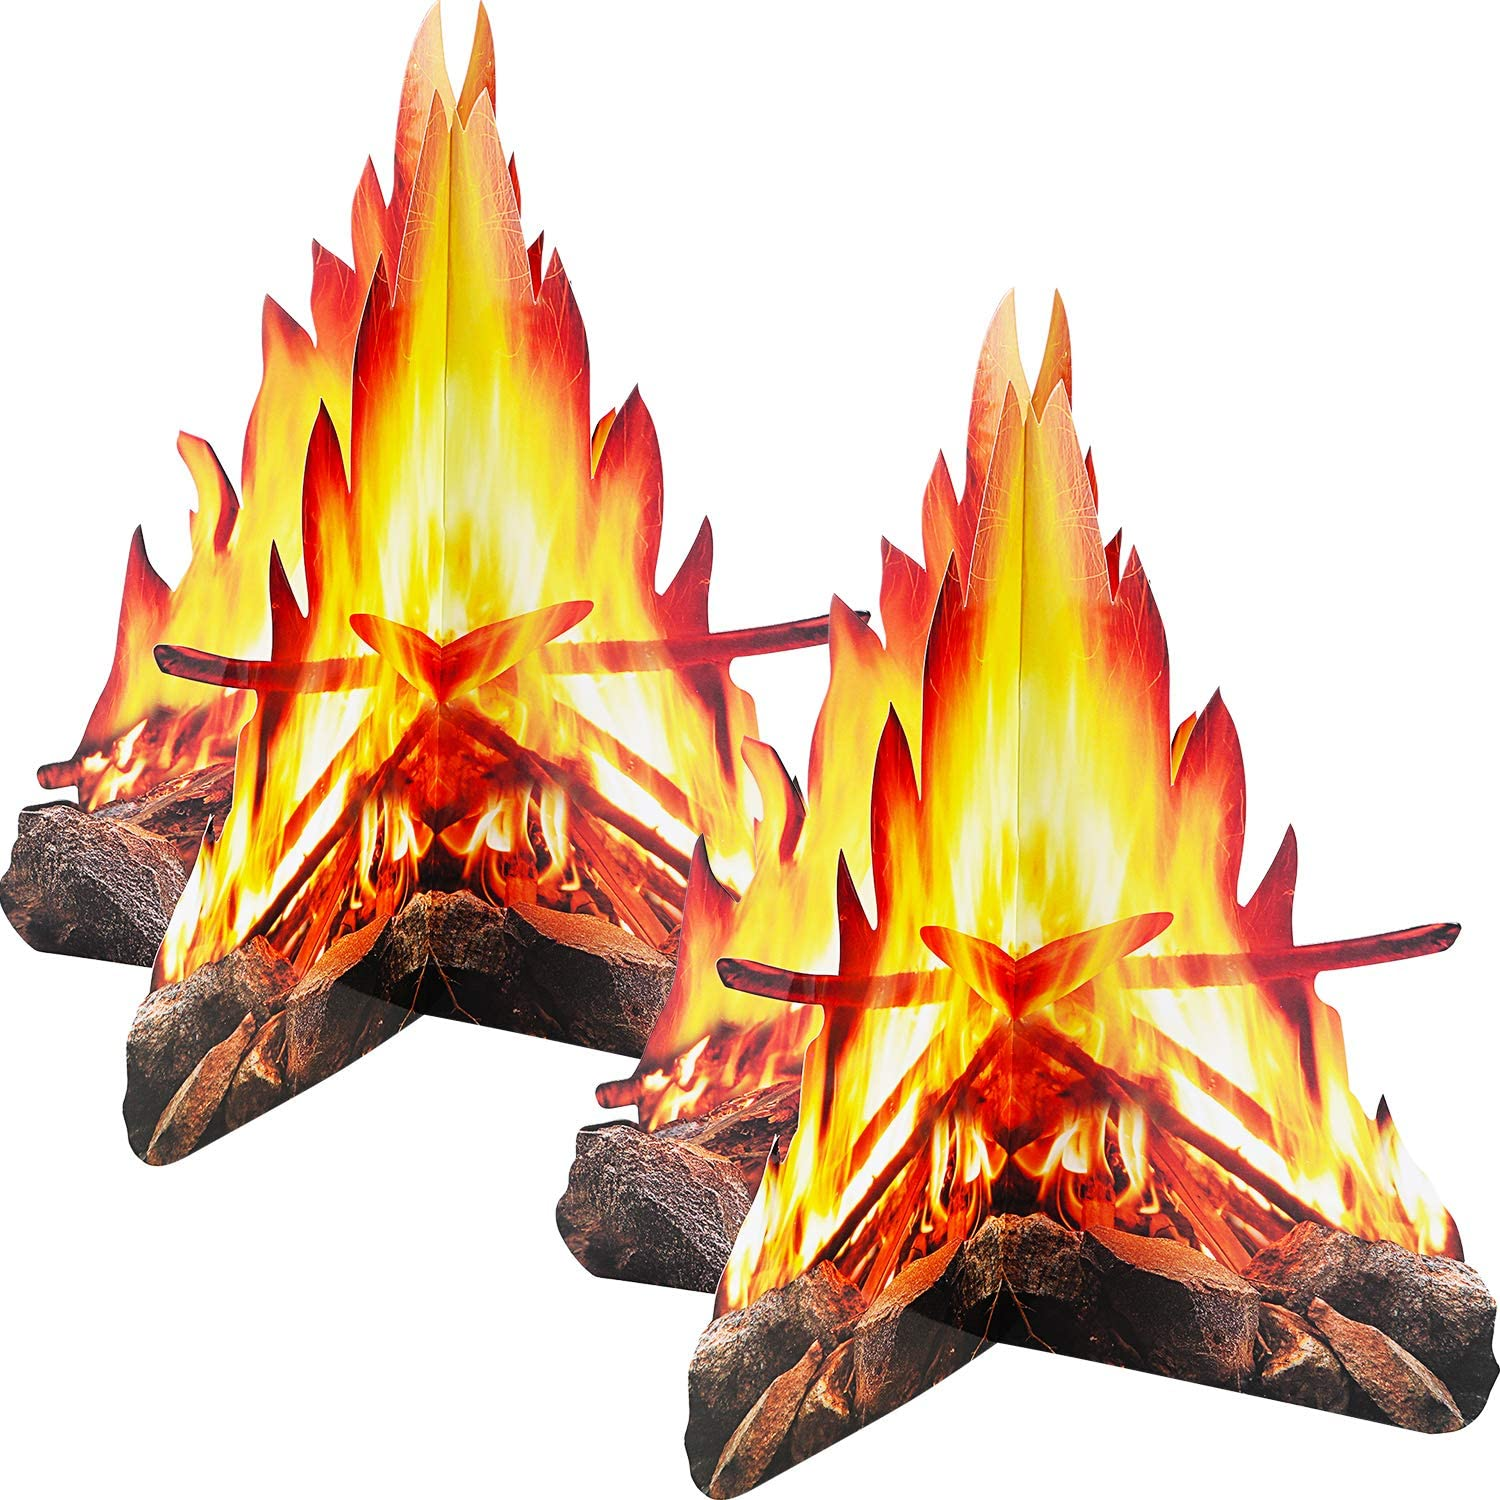 12 Inch Tall Artificial Fire Fake Flame Paper 3D Decorative Cardboard Campfire Centerpiece Flame Torch für Campfire Party Decorations, 2 Sets